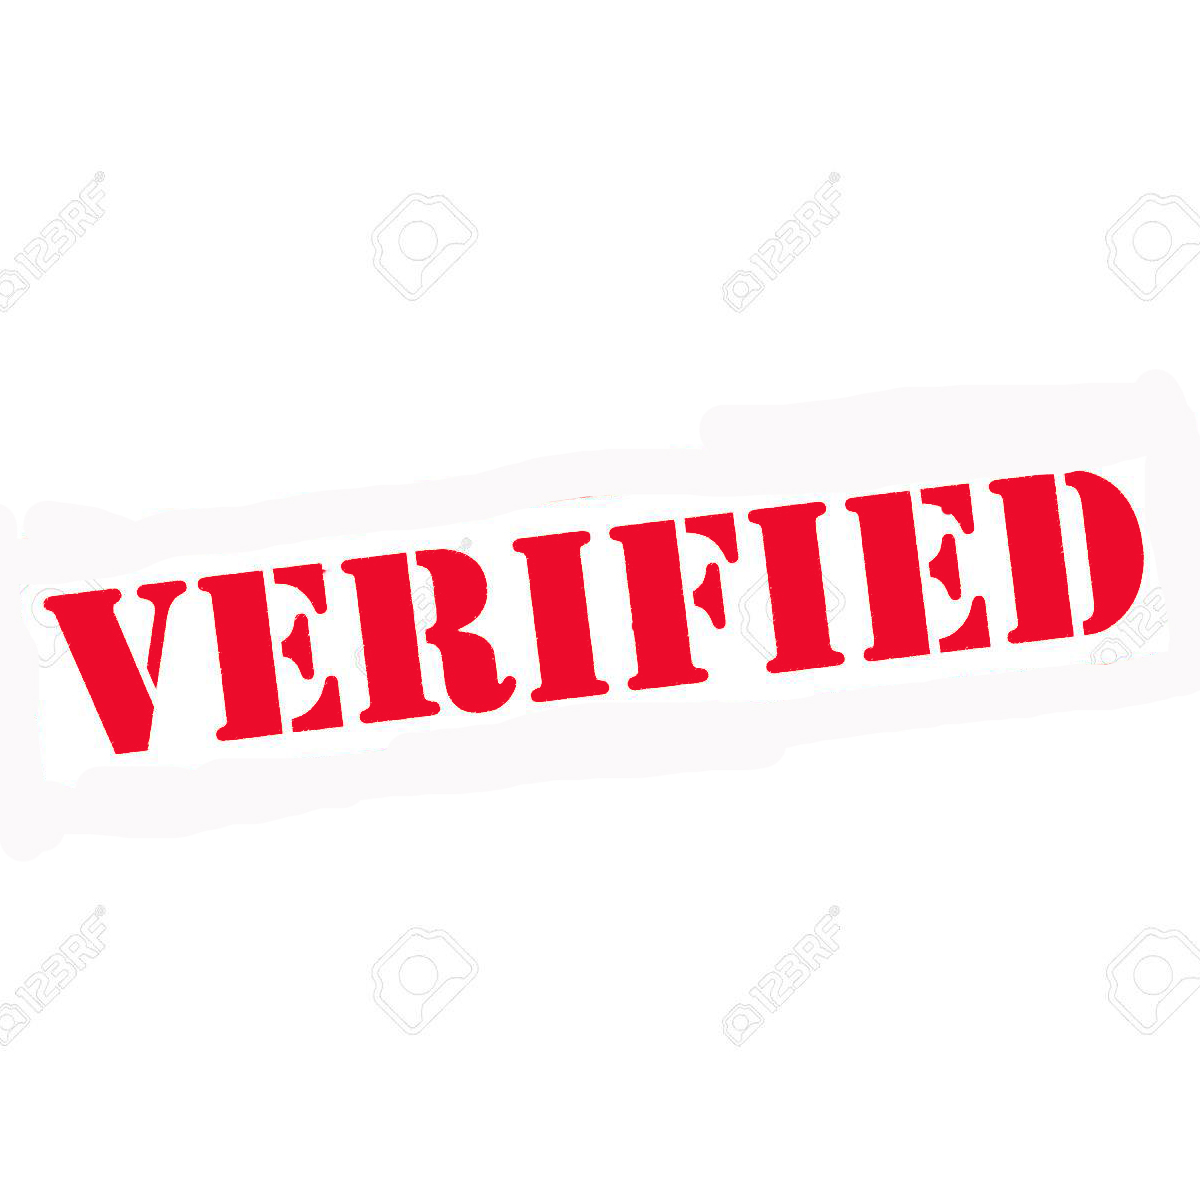 VERIFIED Stamp - Red (pc)